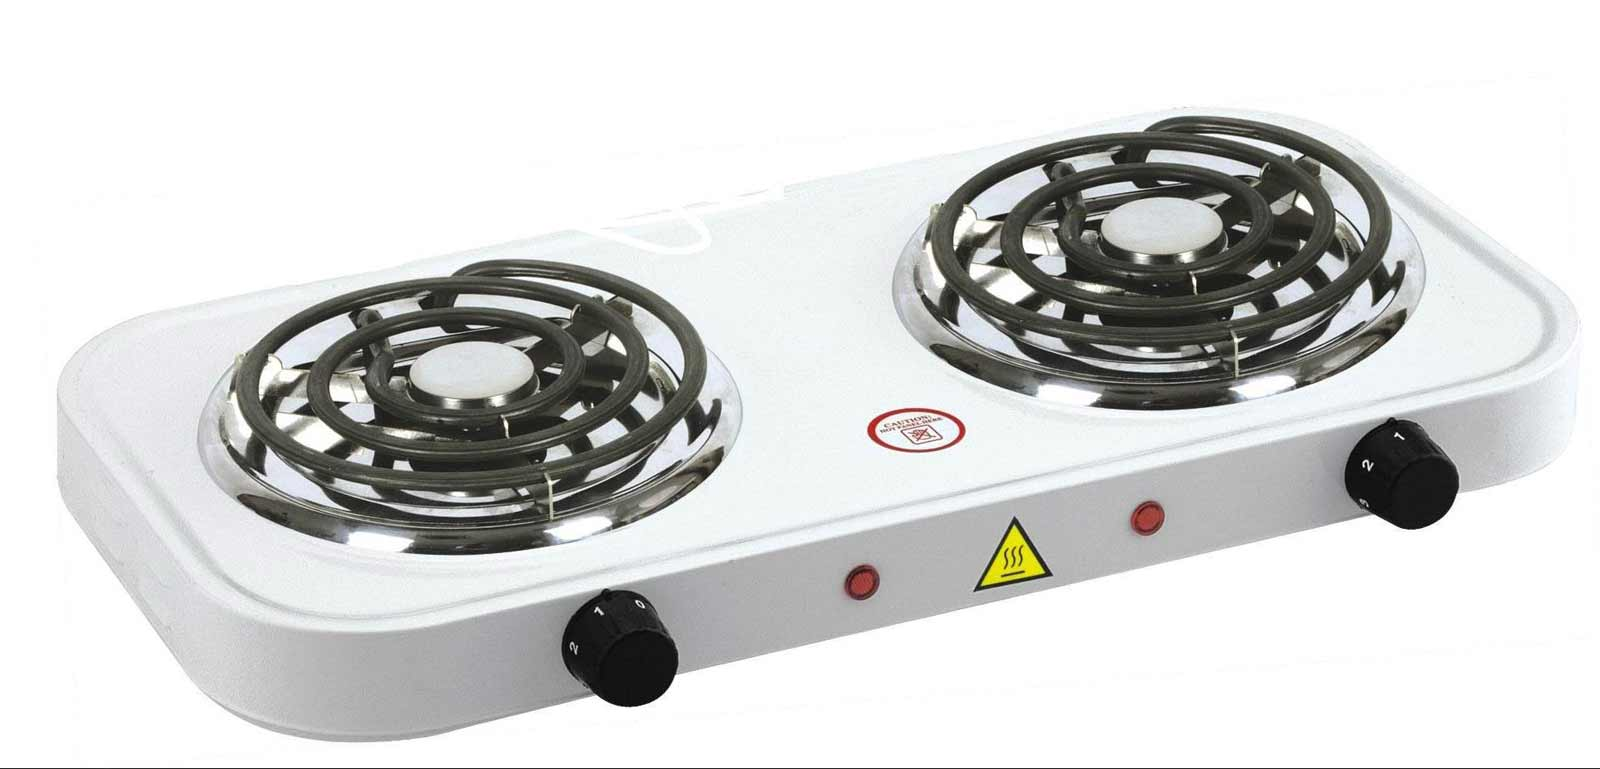 Lightweight white electric kitchen stove